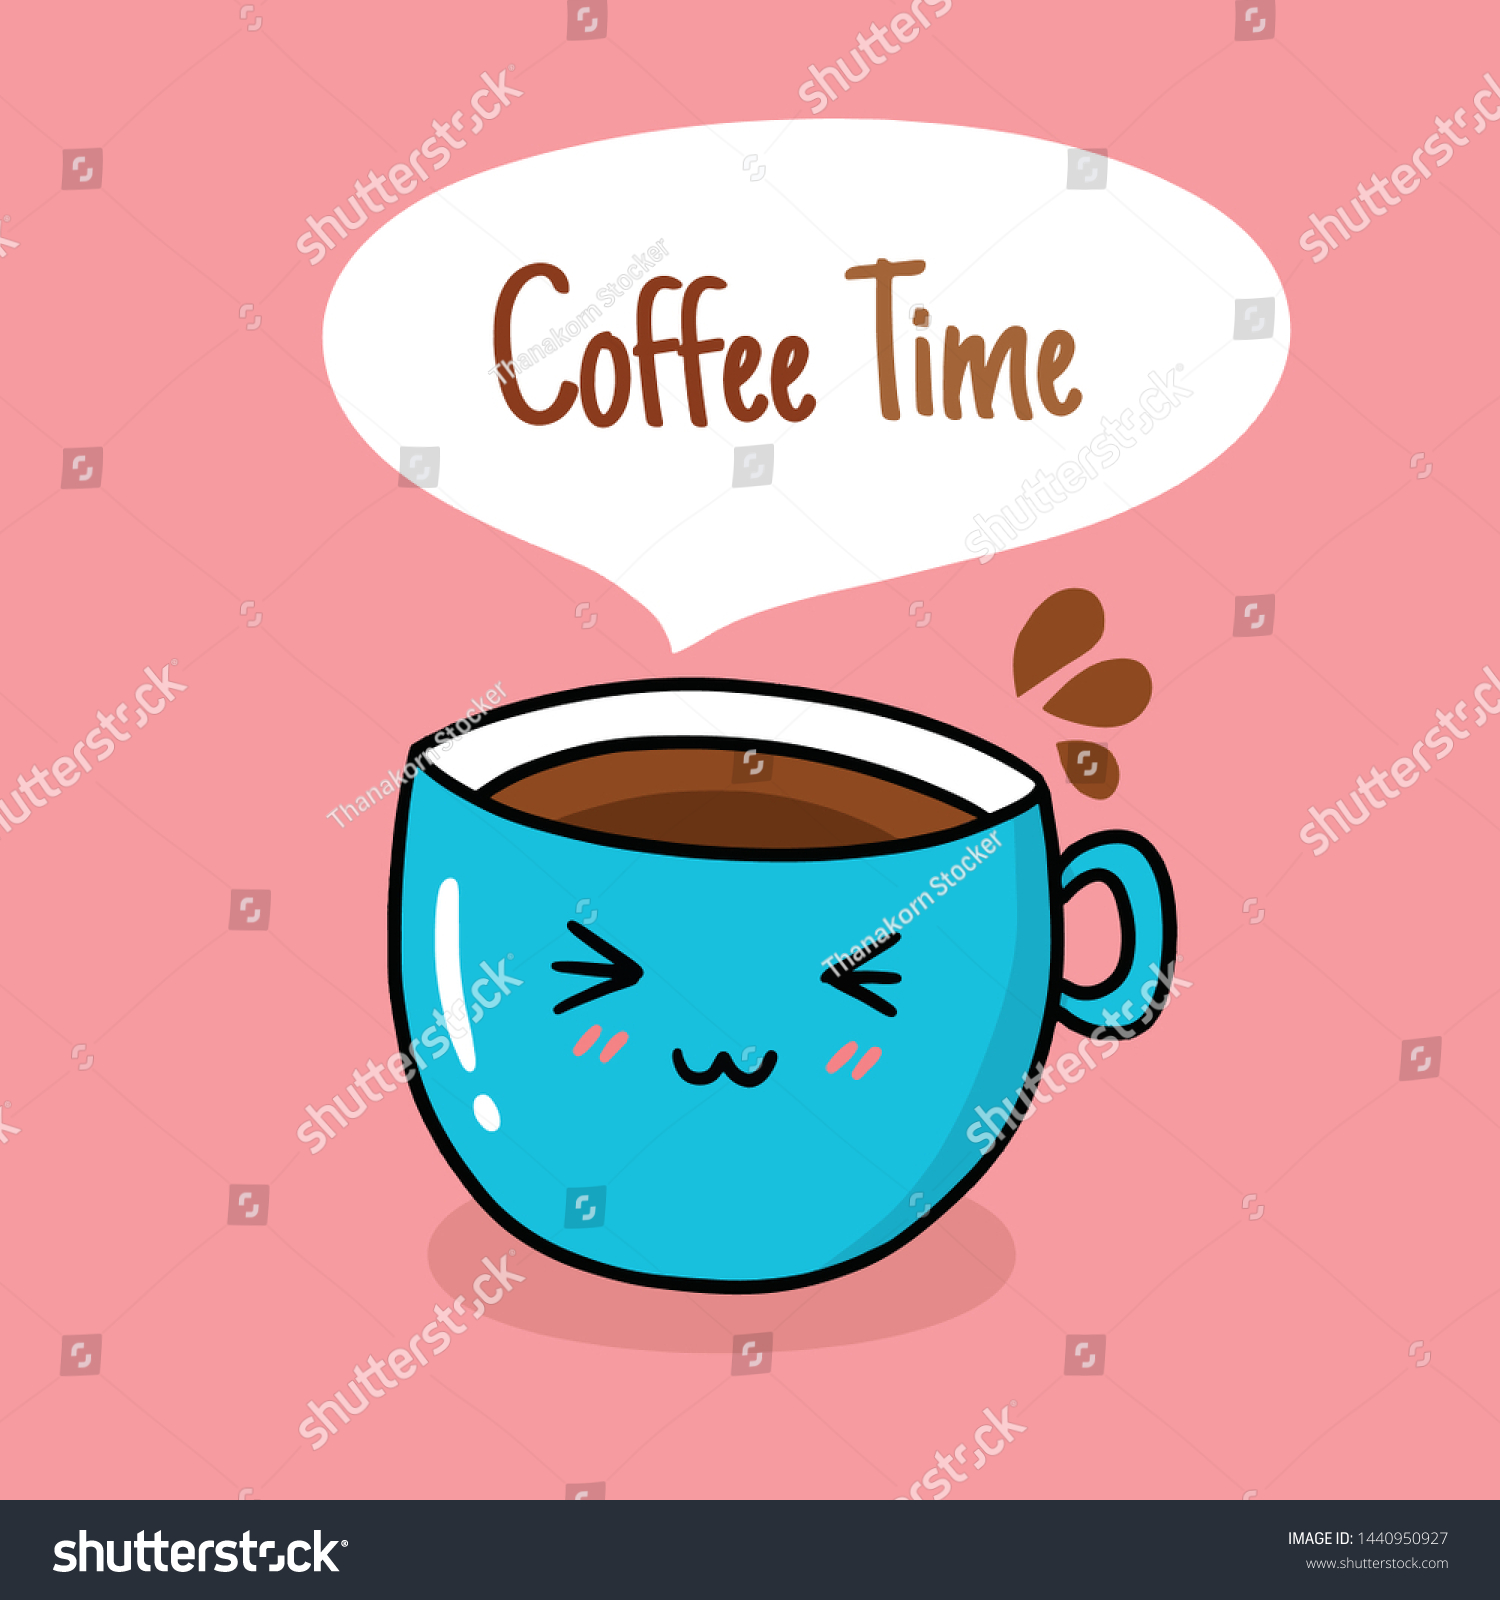 Drawing Cute Coffee Cup Doodle Stylevector Stock Vector Royalty Free 1440950927